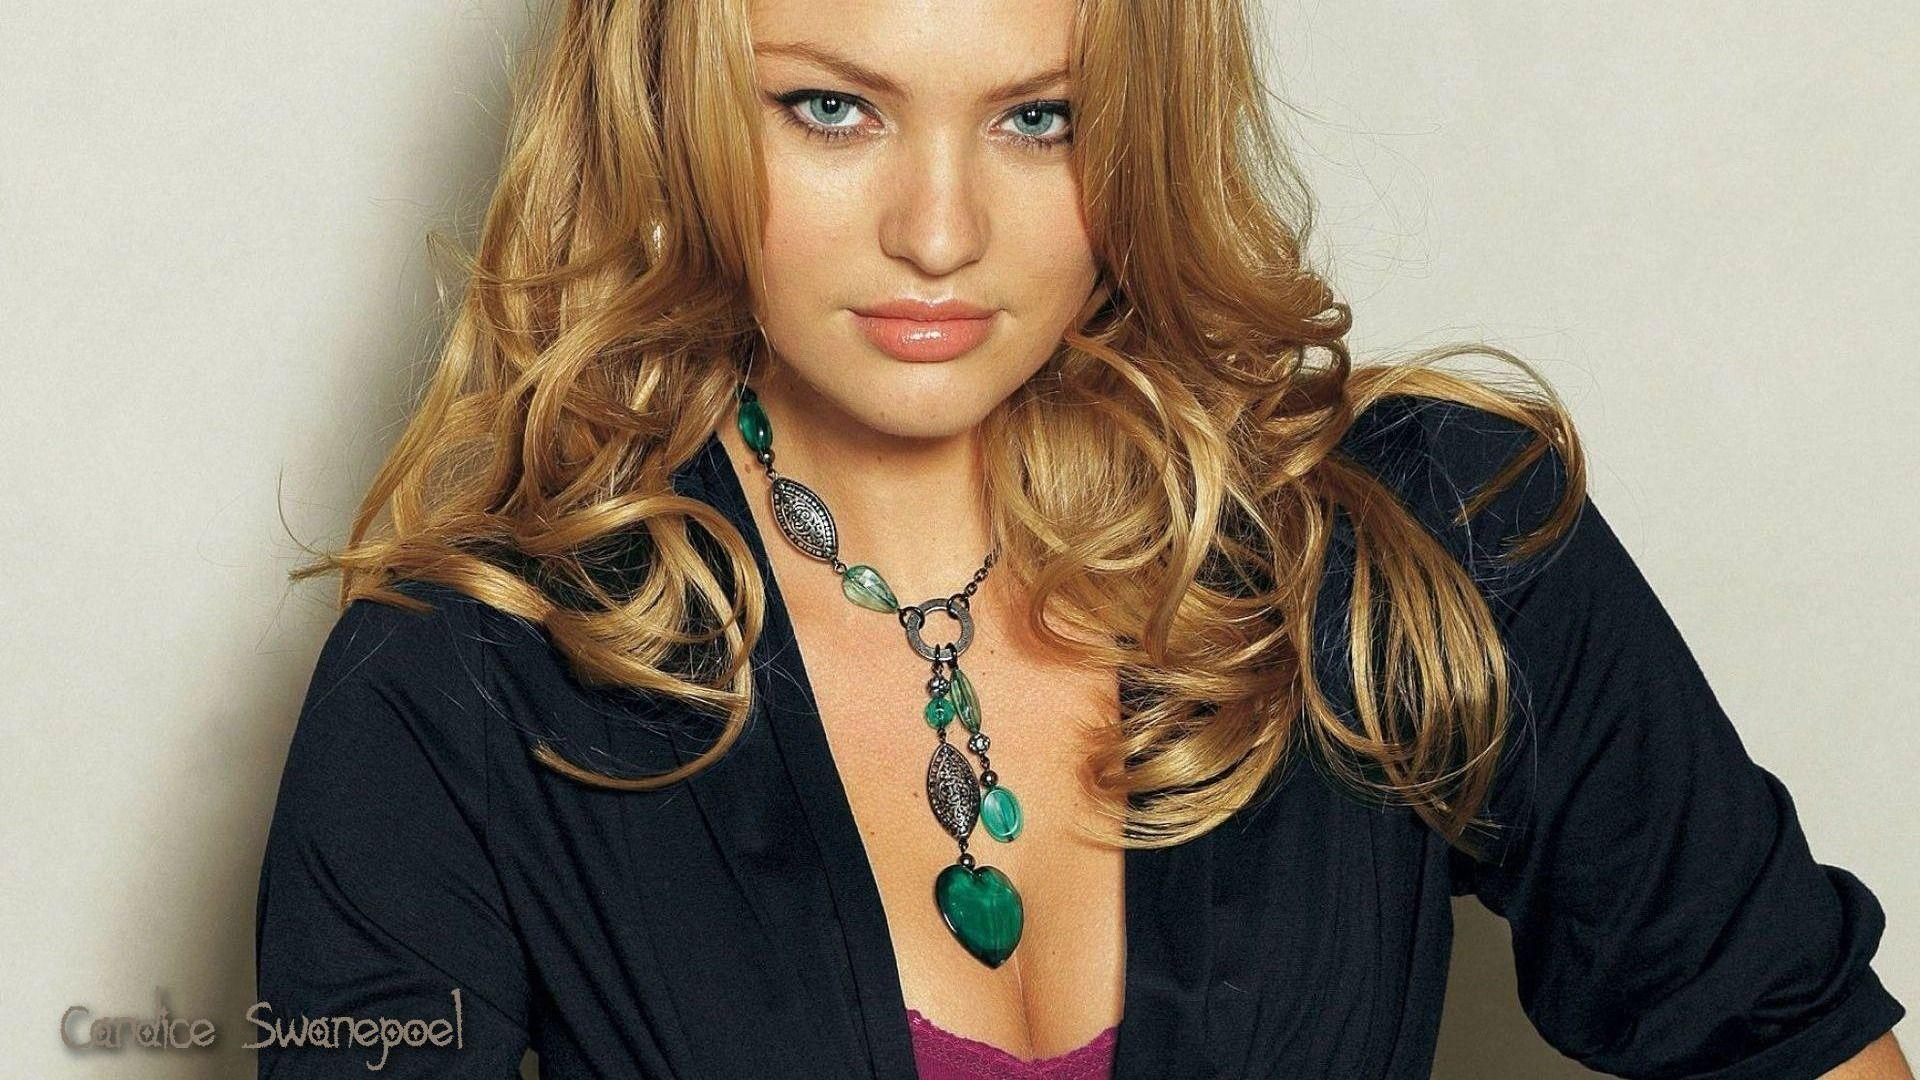 Candice Swanepoel #024 - 1920x1080 Wallpaper Download ...